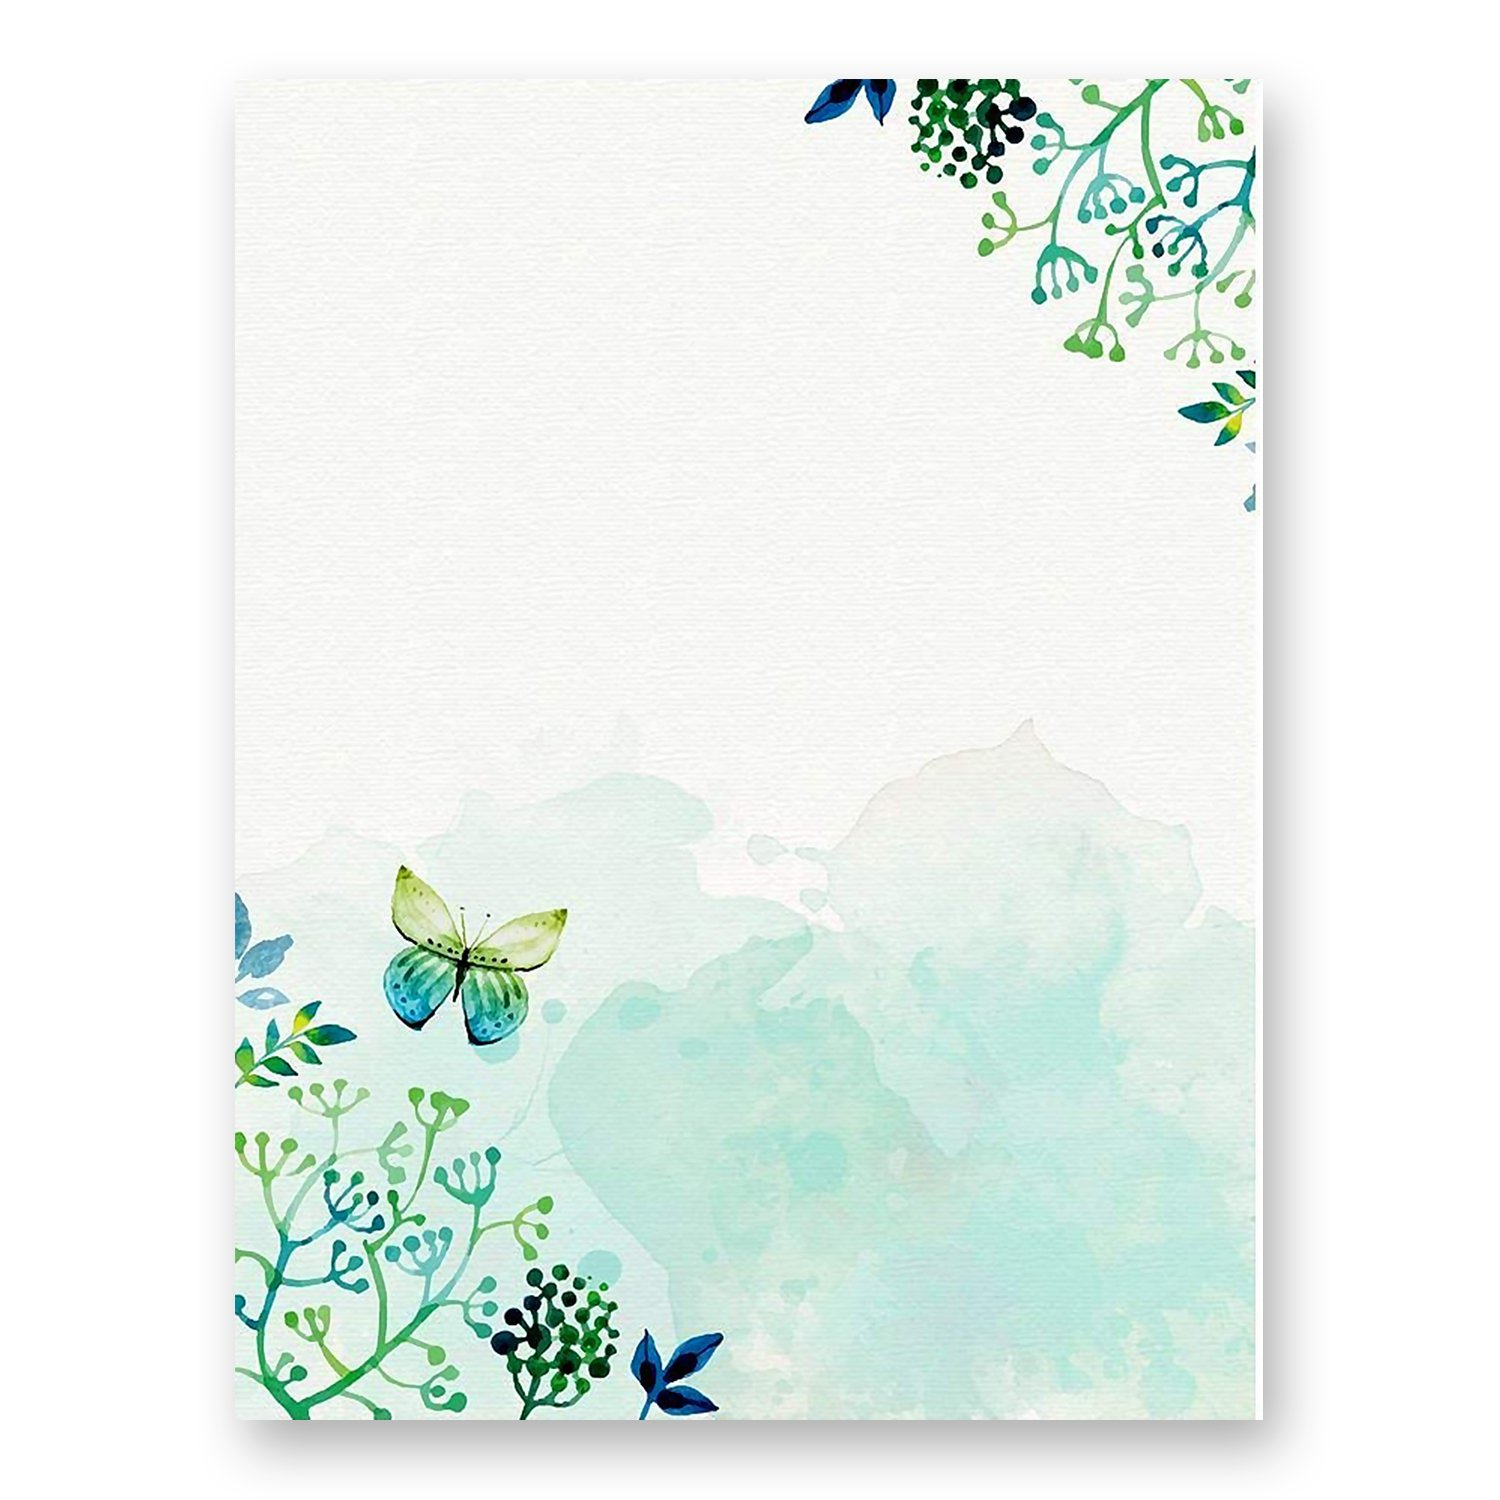 100 Stationery Paper - Cute Floral Designs for Writing Letters, Notes, and Invitations - Perfect for Bridal Shower, Birthdays, Engagement Party, Anniversary, Wedding, VIP and Other Occasions - Seaweed